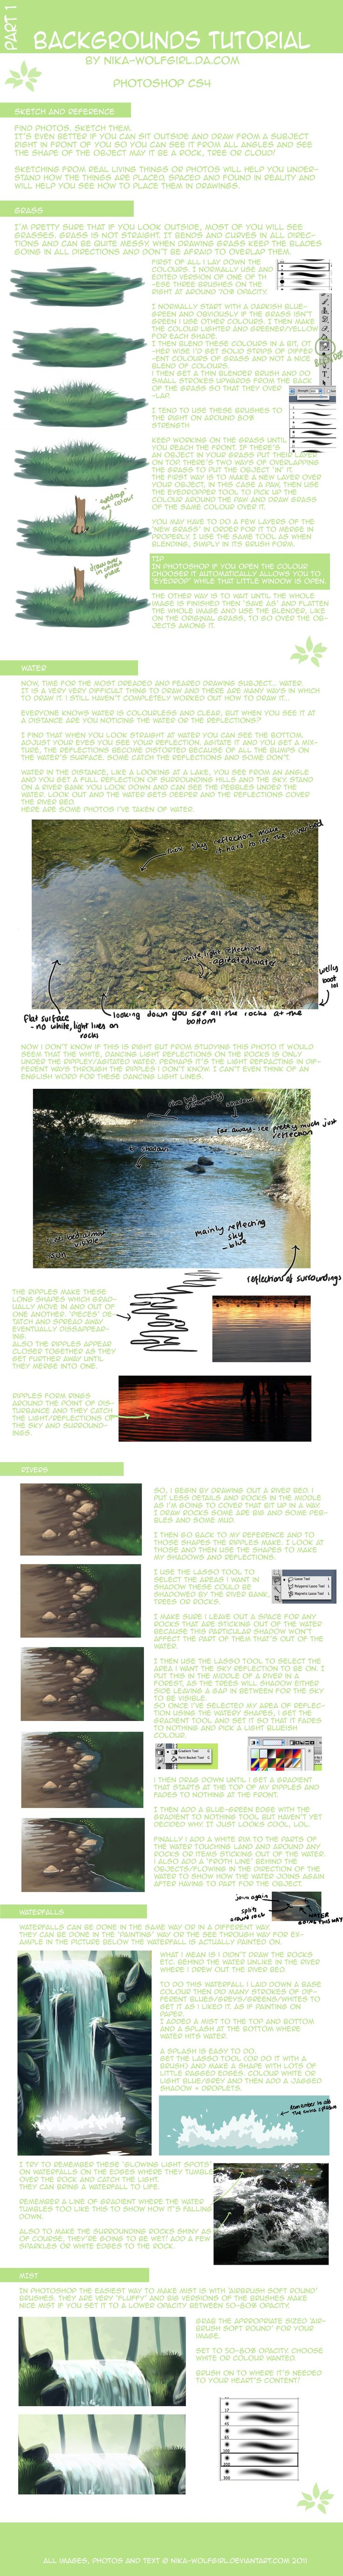 Tips for painting grass and water. This may be a digital tutorial, but there are loads of useful tips about how to transfer a reference into an image...